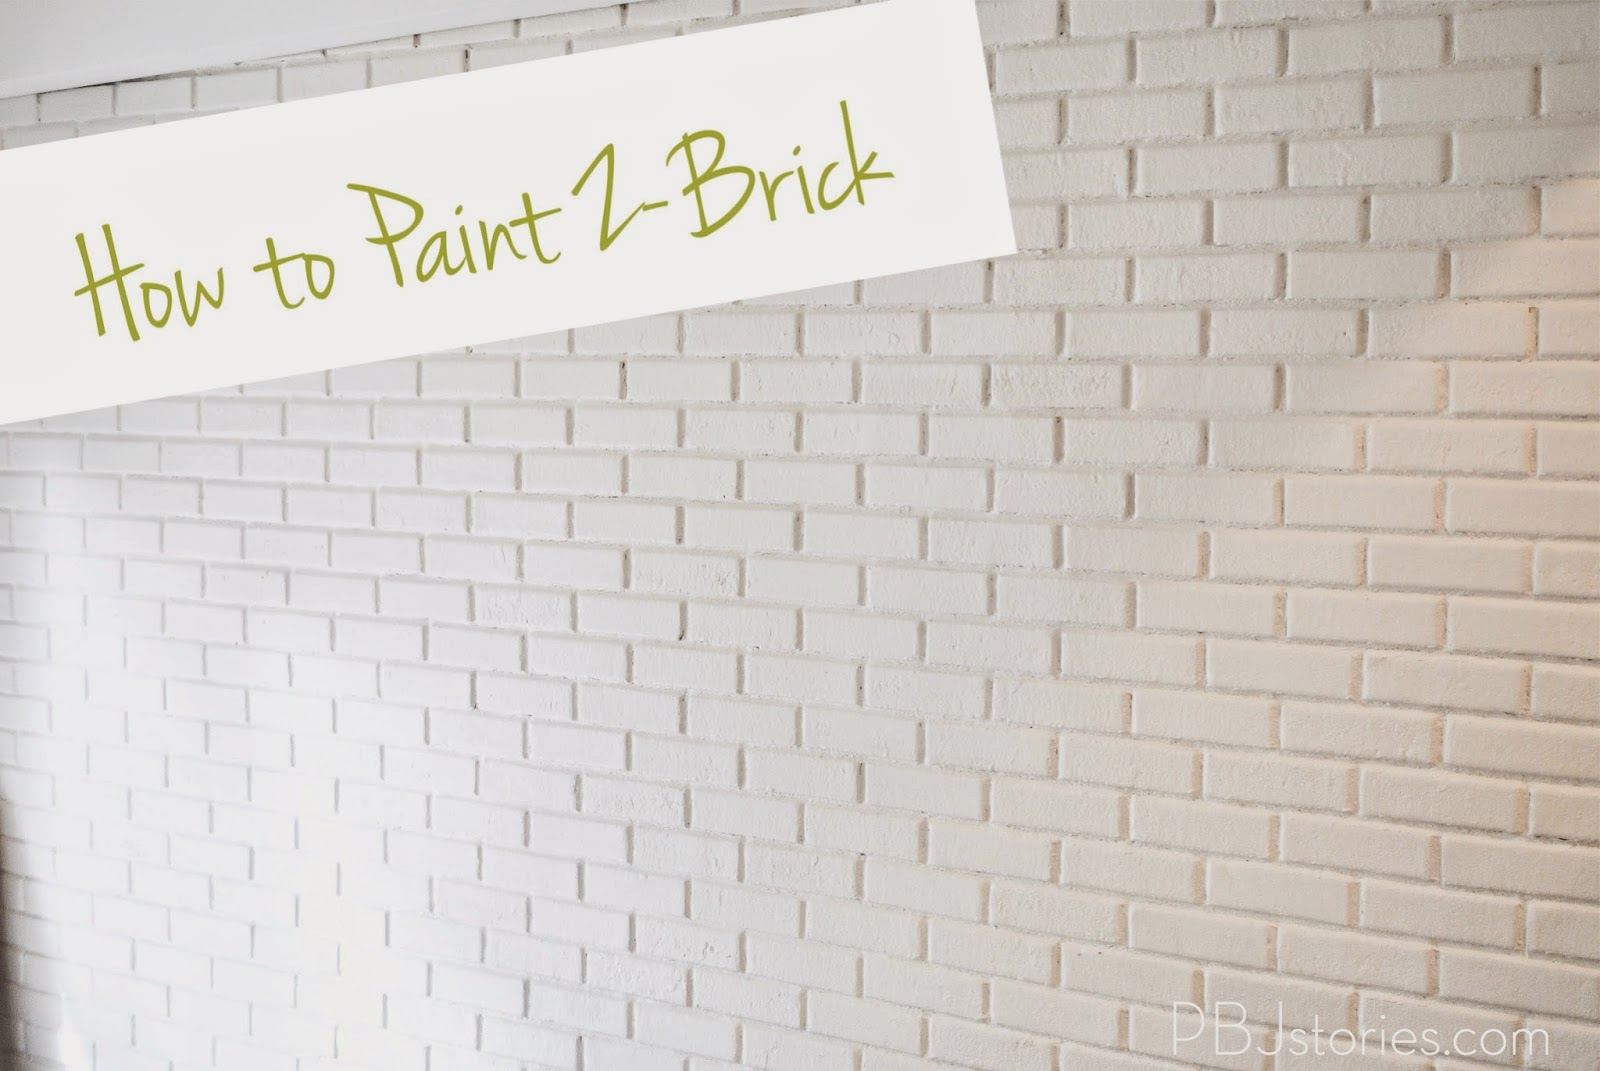 How To Paint An Interior Brick Wall Pbjreno